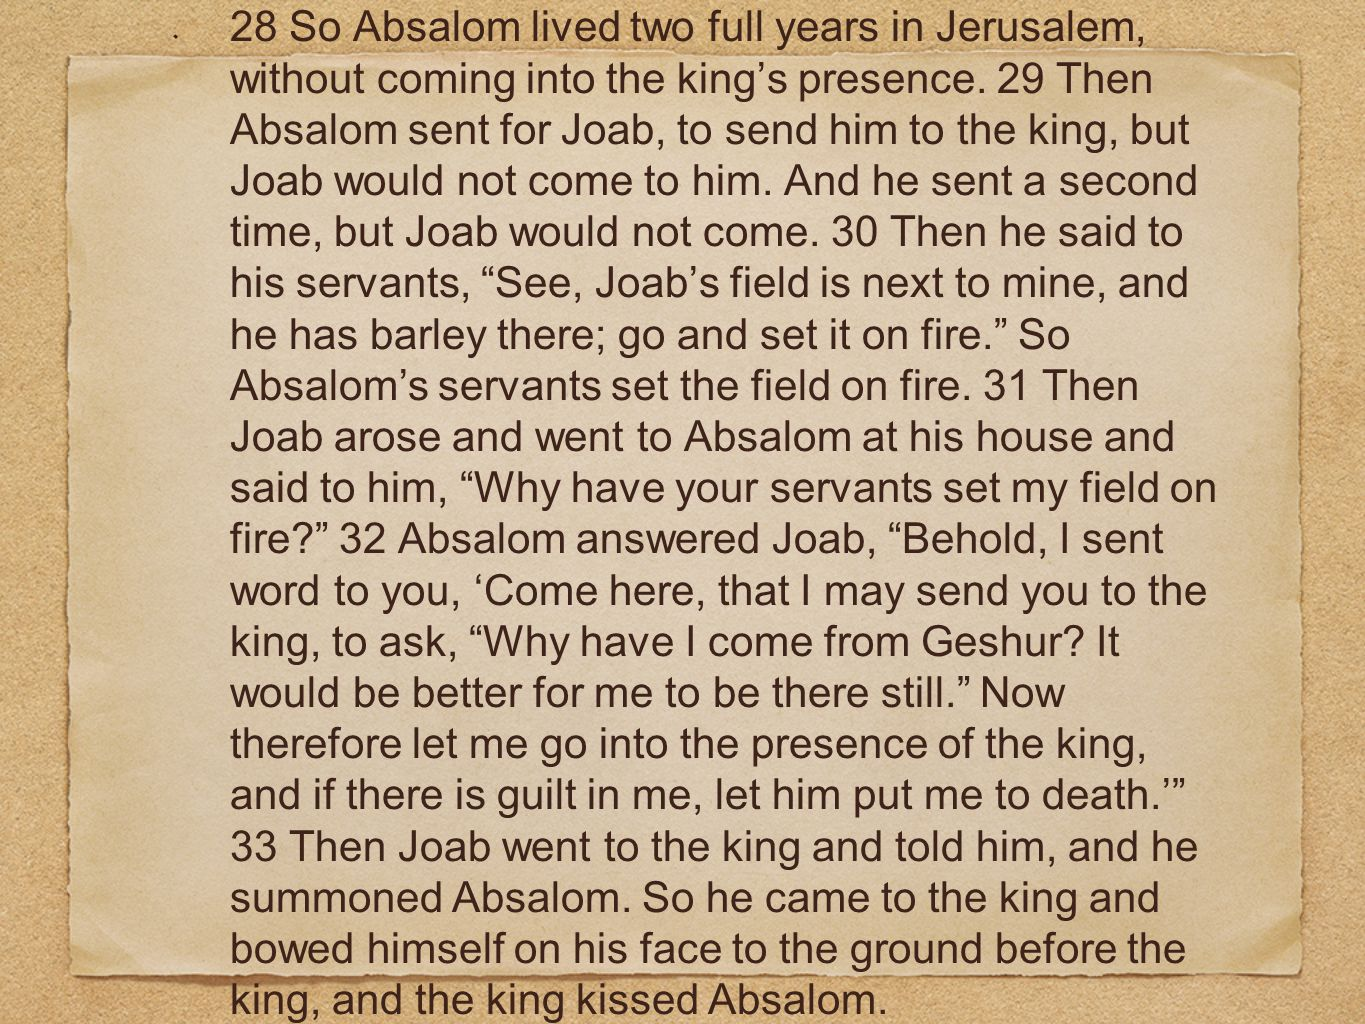 28 So Absalom lived two full years in Jerusalem, without coming into the king's presence.